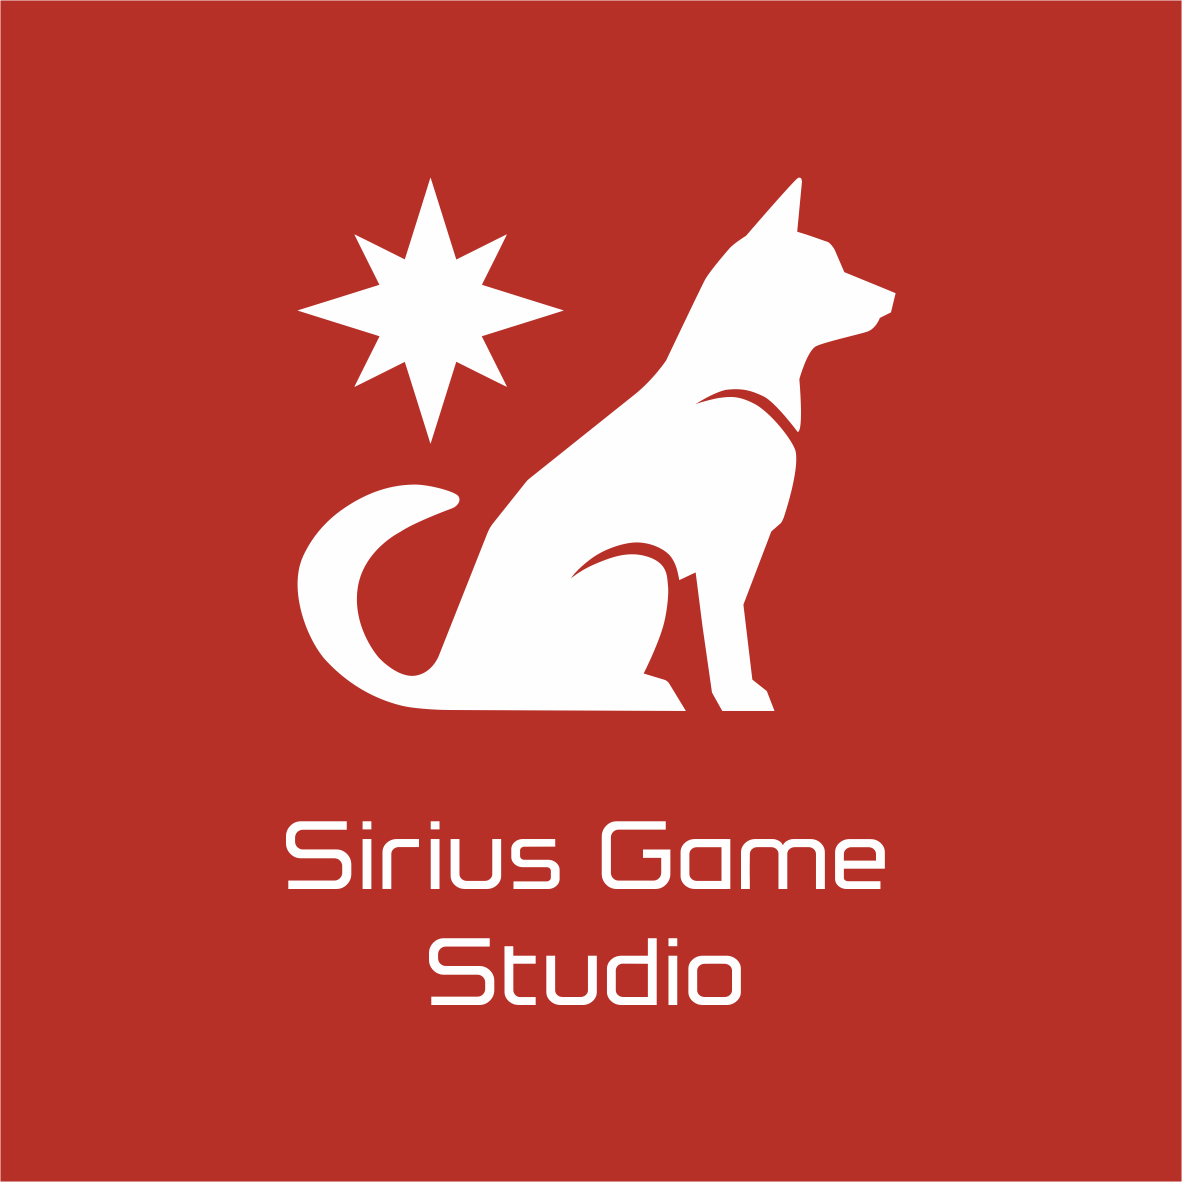 Sirius Game Studio